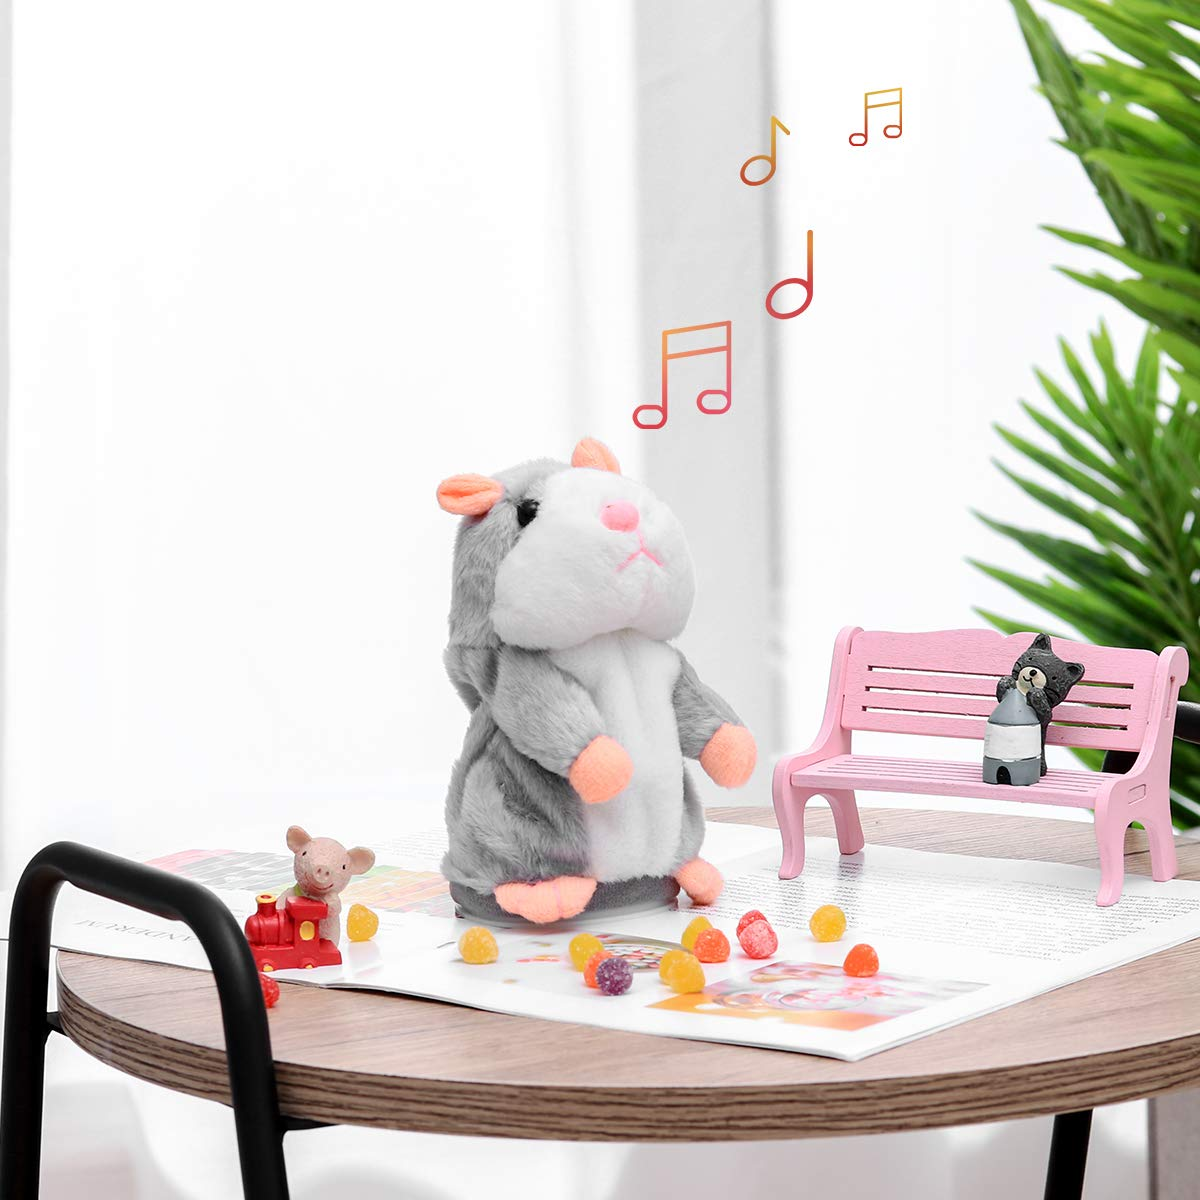 Grey NUOBESTY Talking Hamster Toy Stuffed Animal Interactive Toy Repeat What You Say Mimicry Pet Toy Electronic Record for Children Early Learning Gift